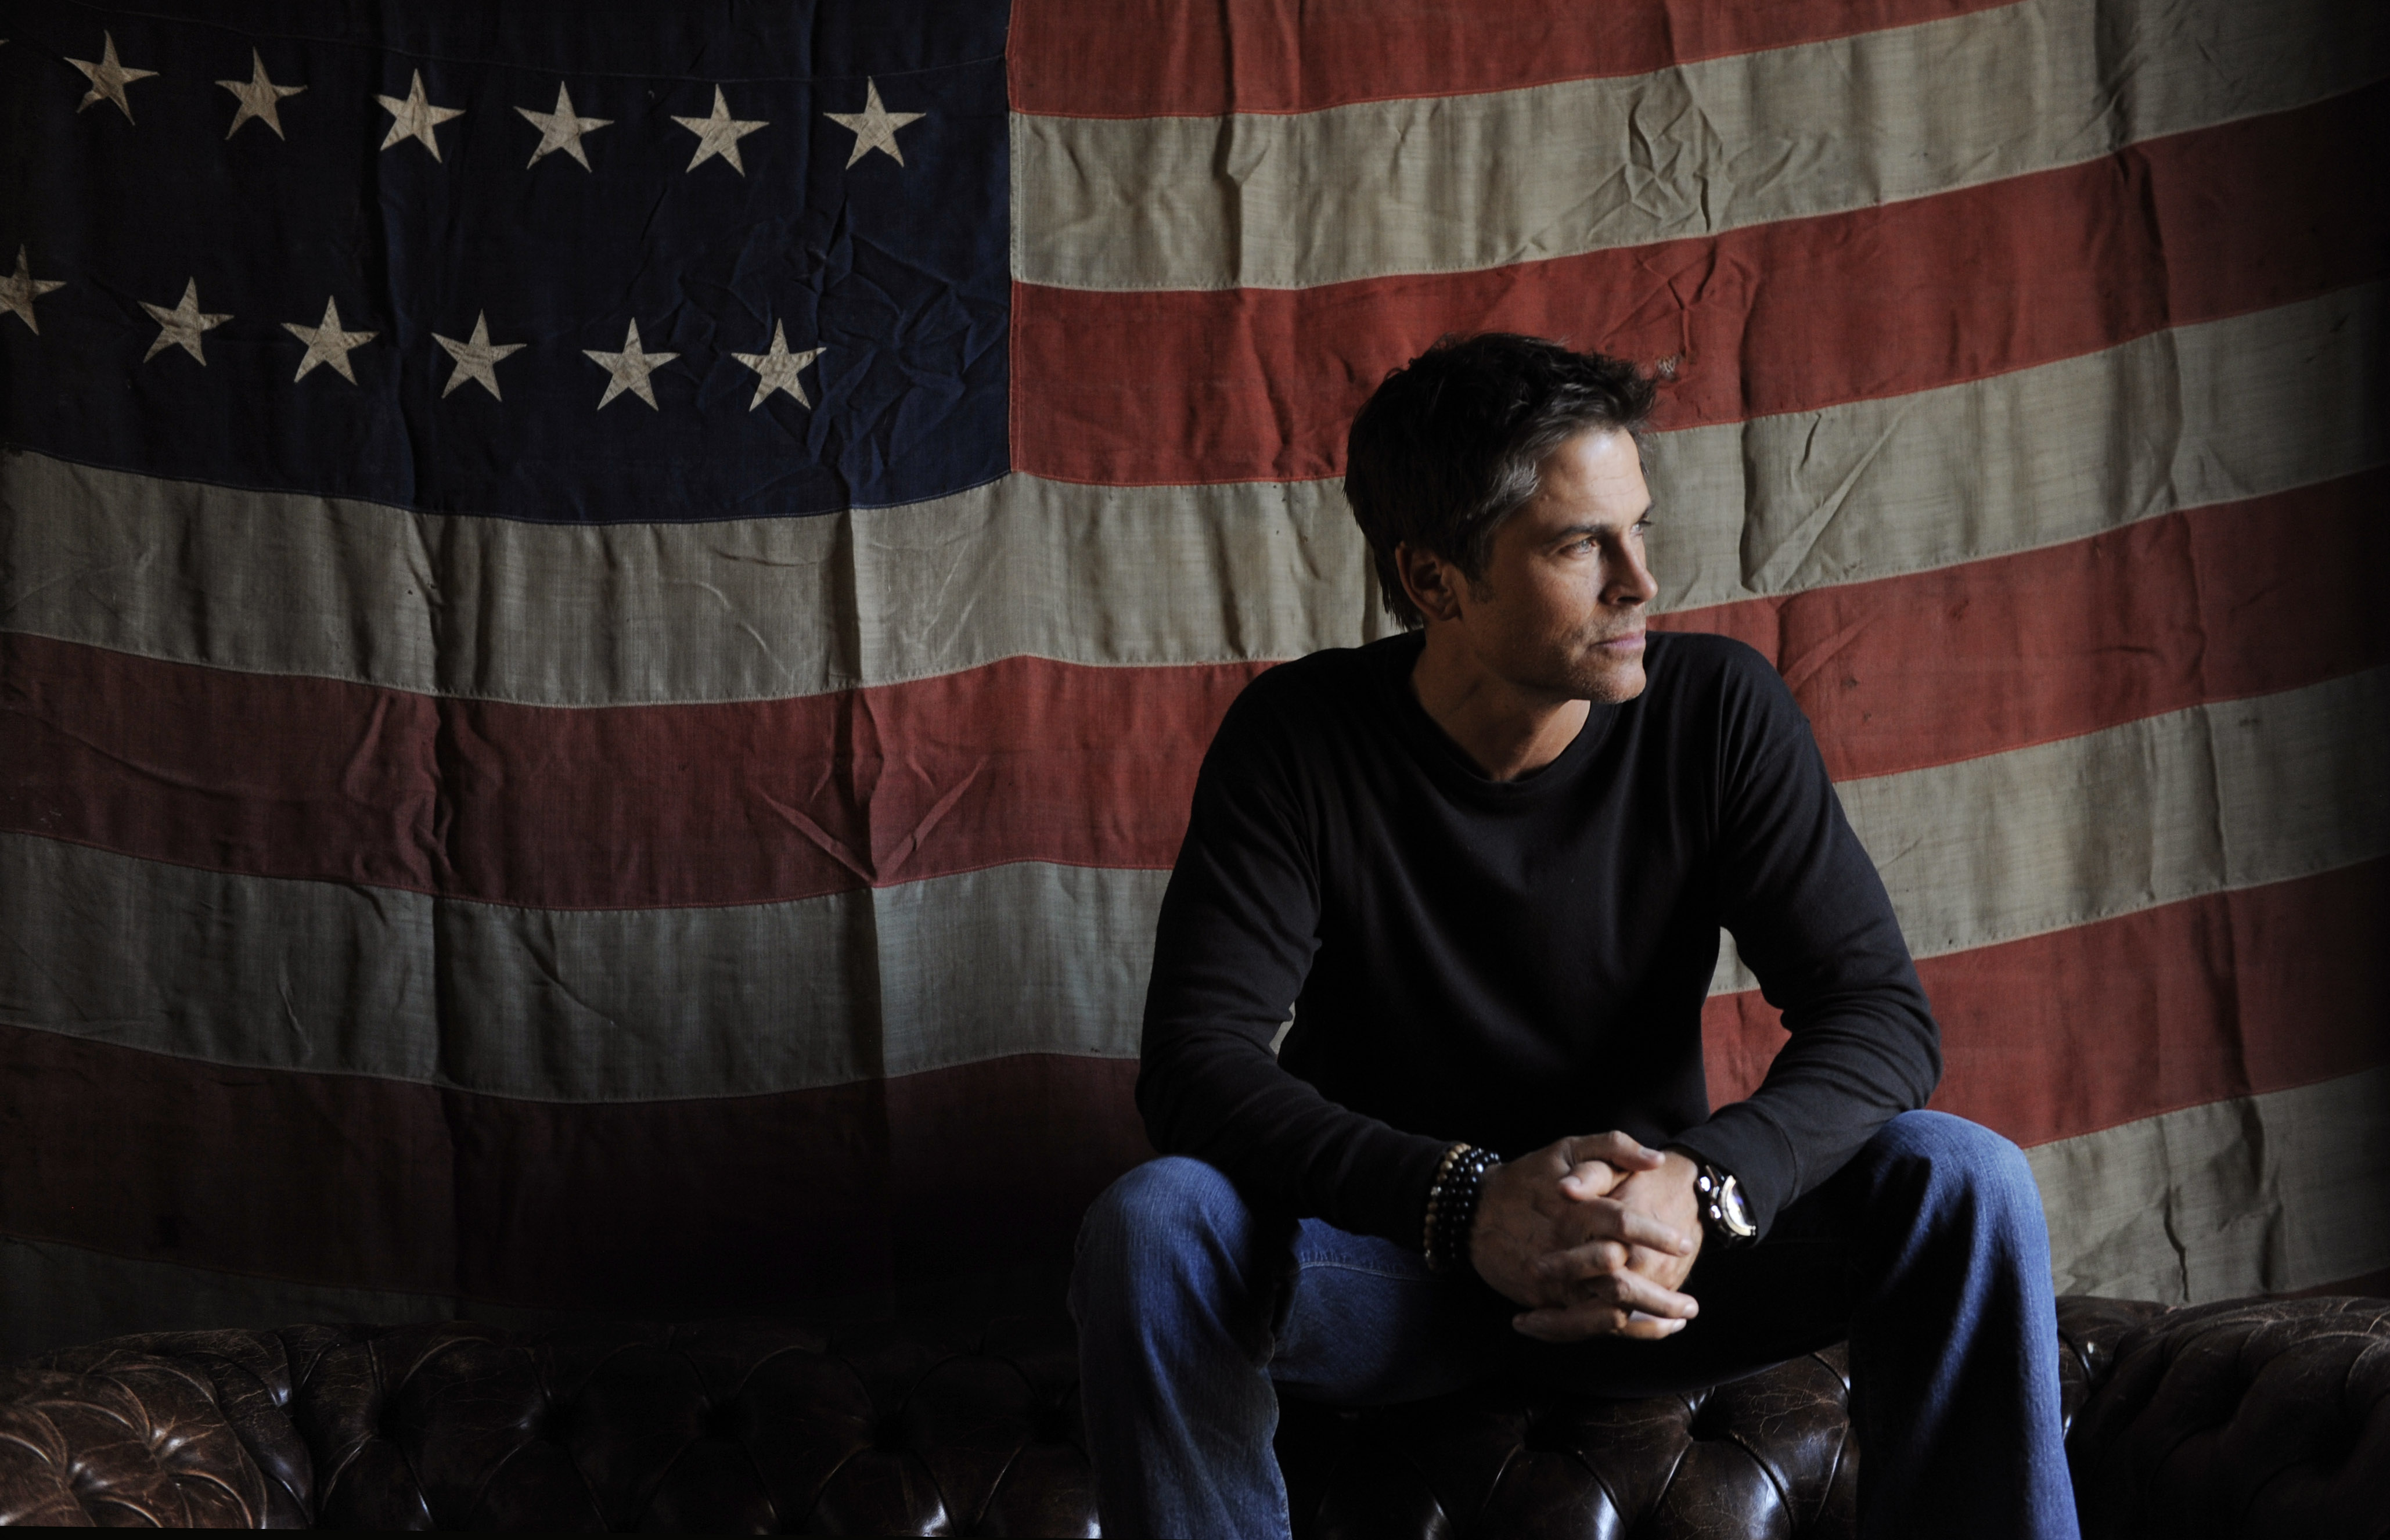 """Rob Lowe, a cast member in """"I Melt with You,"""" poses for a portrait at the Bing Bar during the 2011 Sundance Film Festival in Park City, Utah, Wednesday, Jan. 26, 2011. (AP Photo/Chris Pizzello)"""